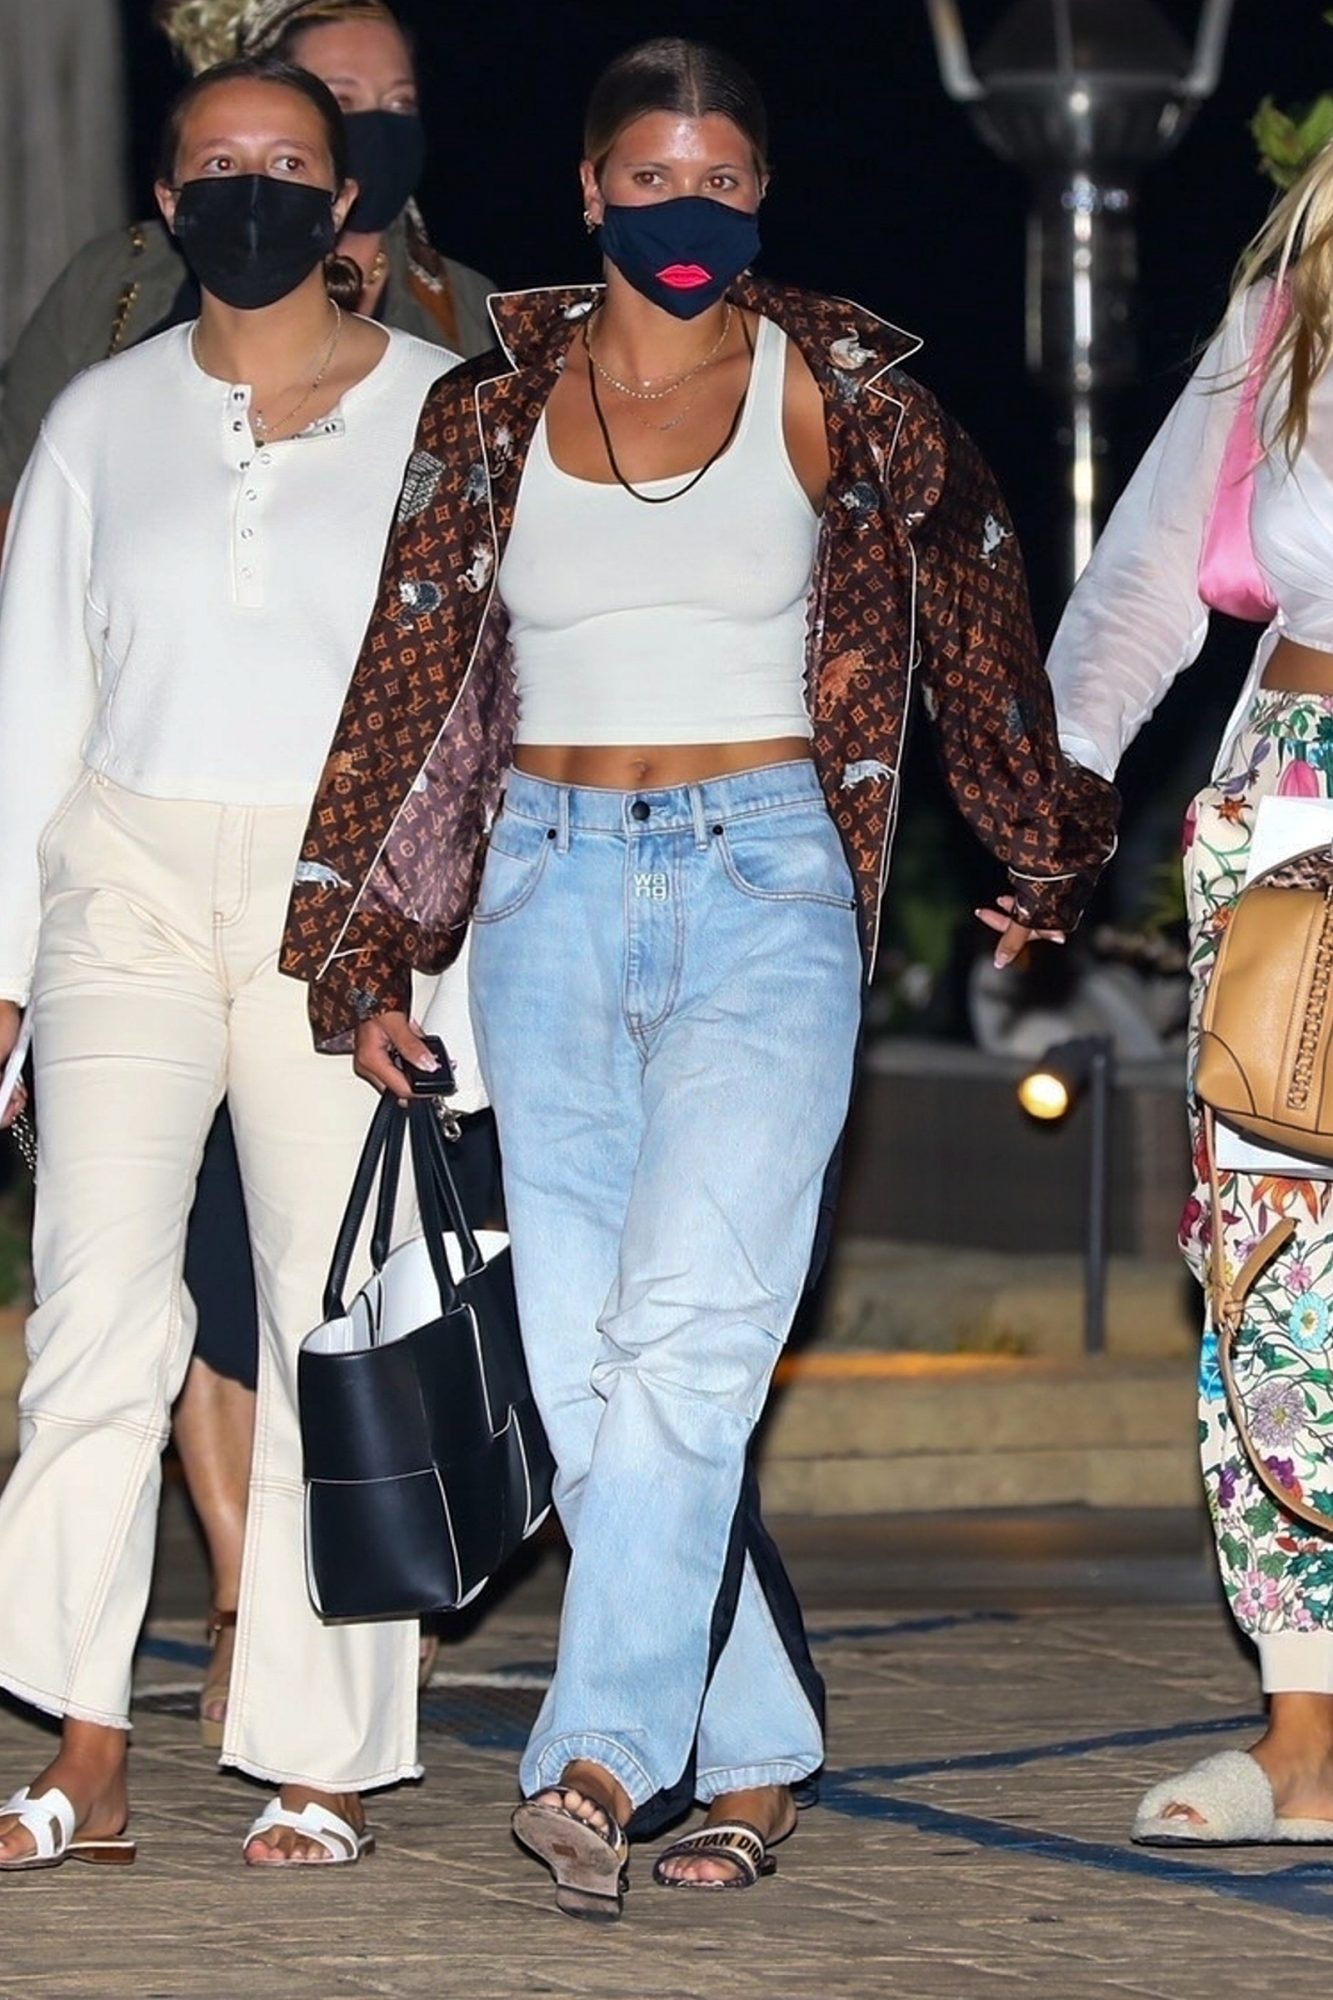 Sofia Richie heads out after dinner with friends at Nobu in Malibu.